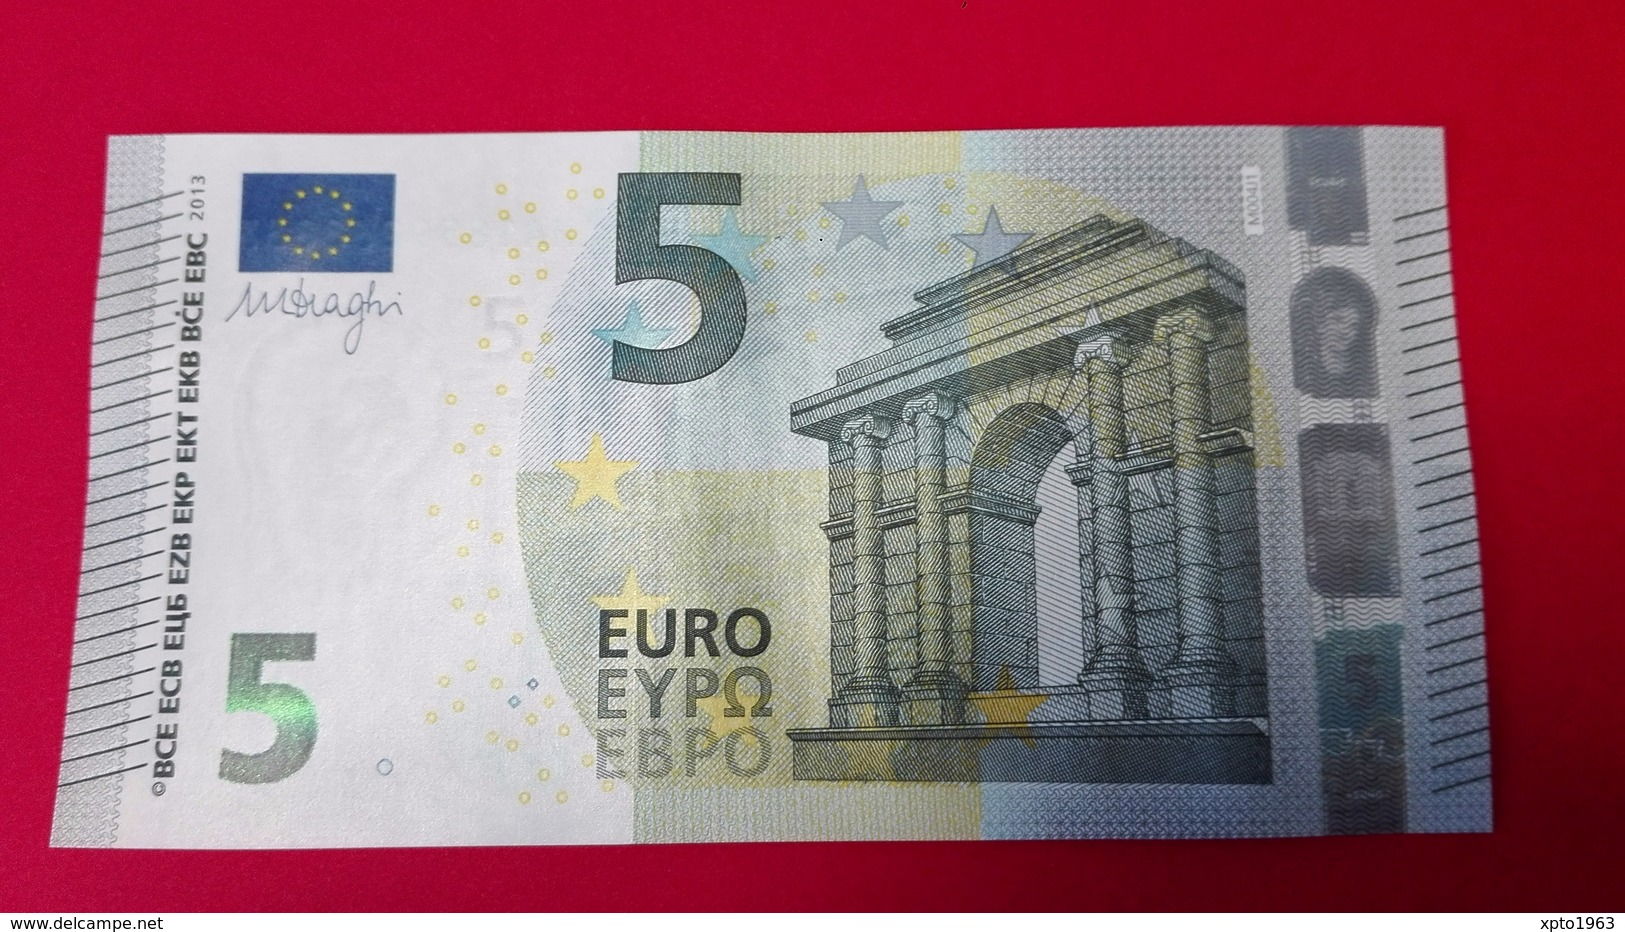 5 EURO M004 J1 PORTUGAL M004J1 - Serial Number MA1859268863 - UNC FDS NEUF - 5 Euro